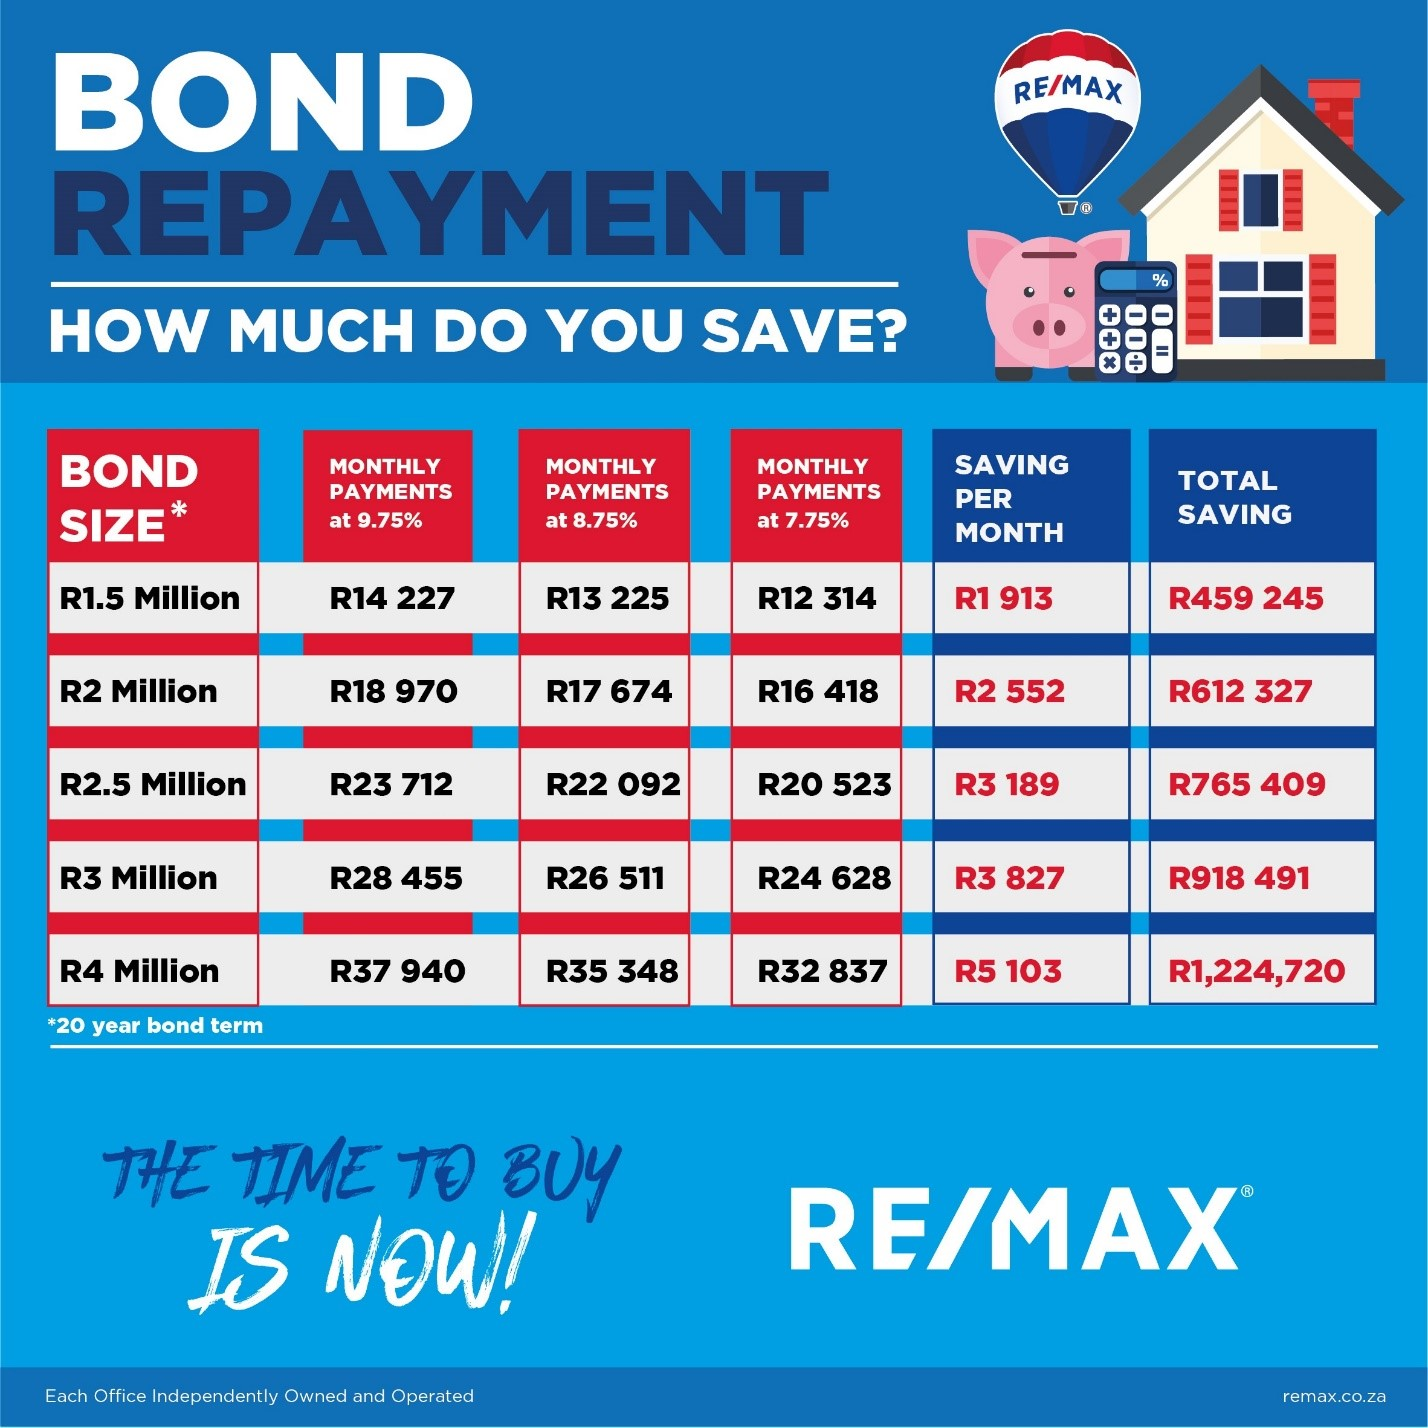 HOW MUCH HOMEOWNERS WILL SAVE FROM INTEREST RATE CUTS